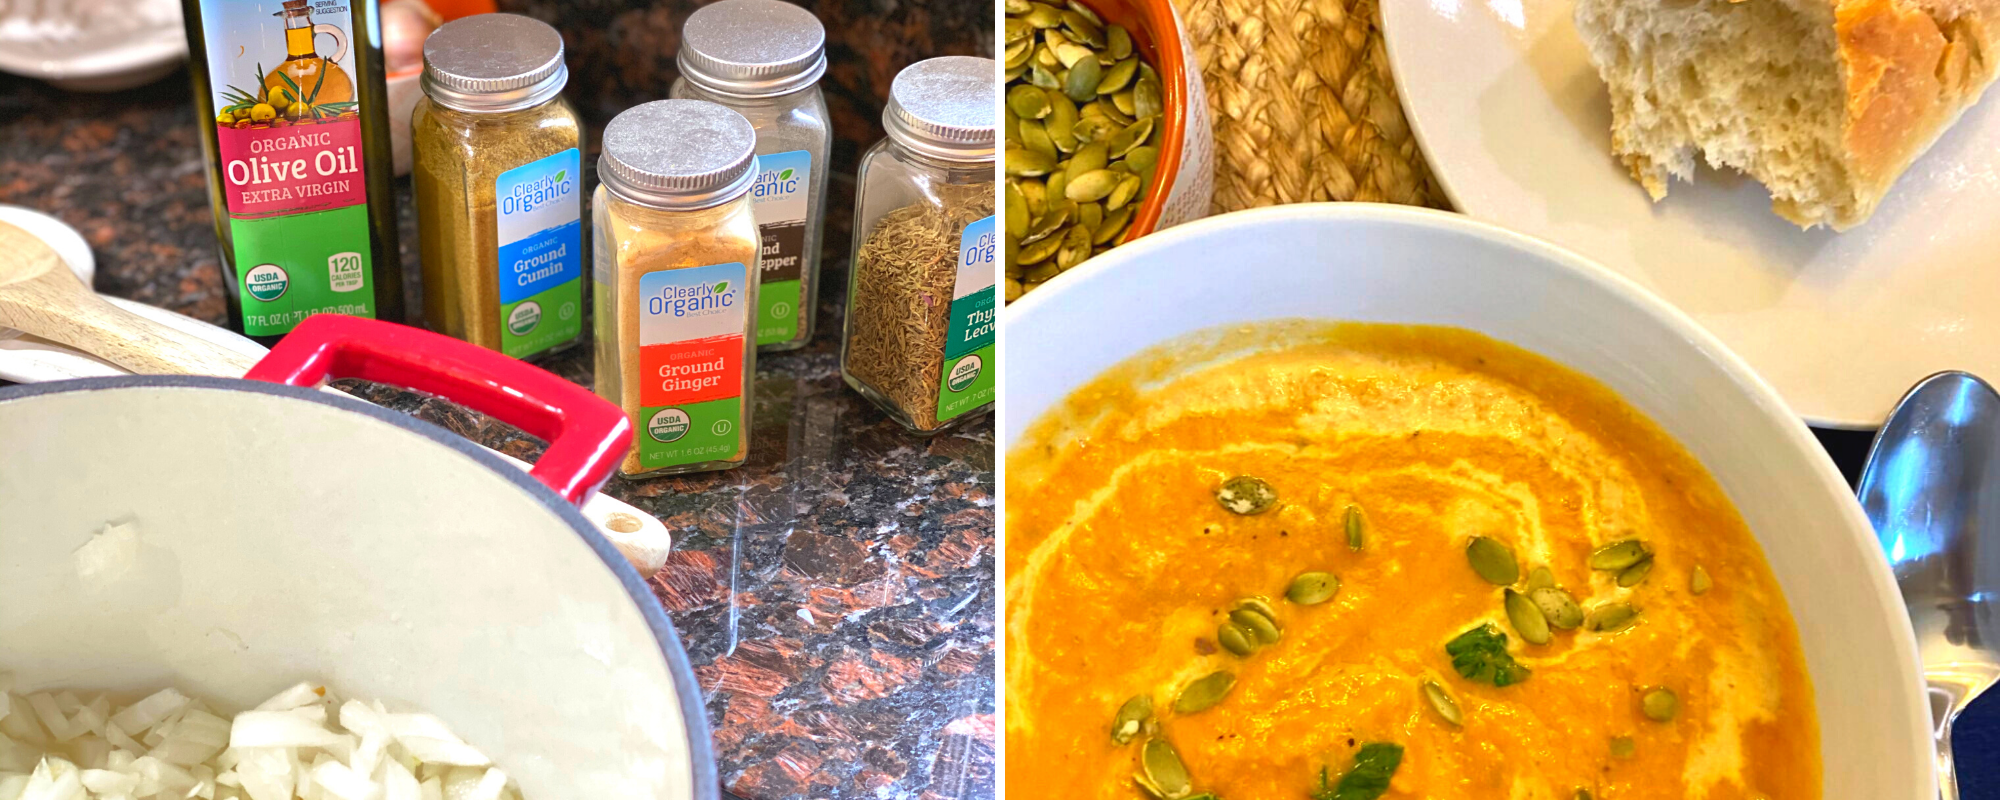 Easy Homemade Pumpkin Soup